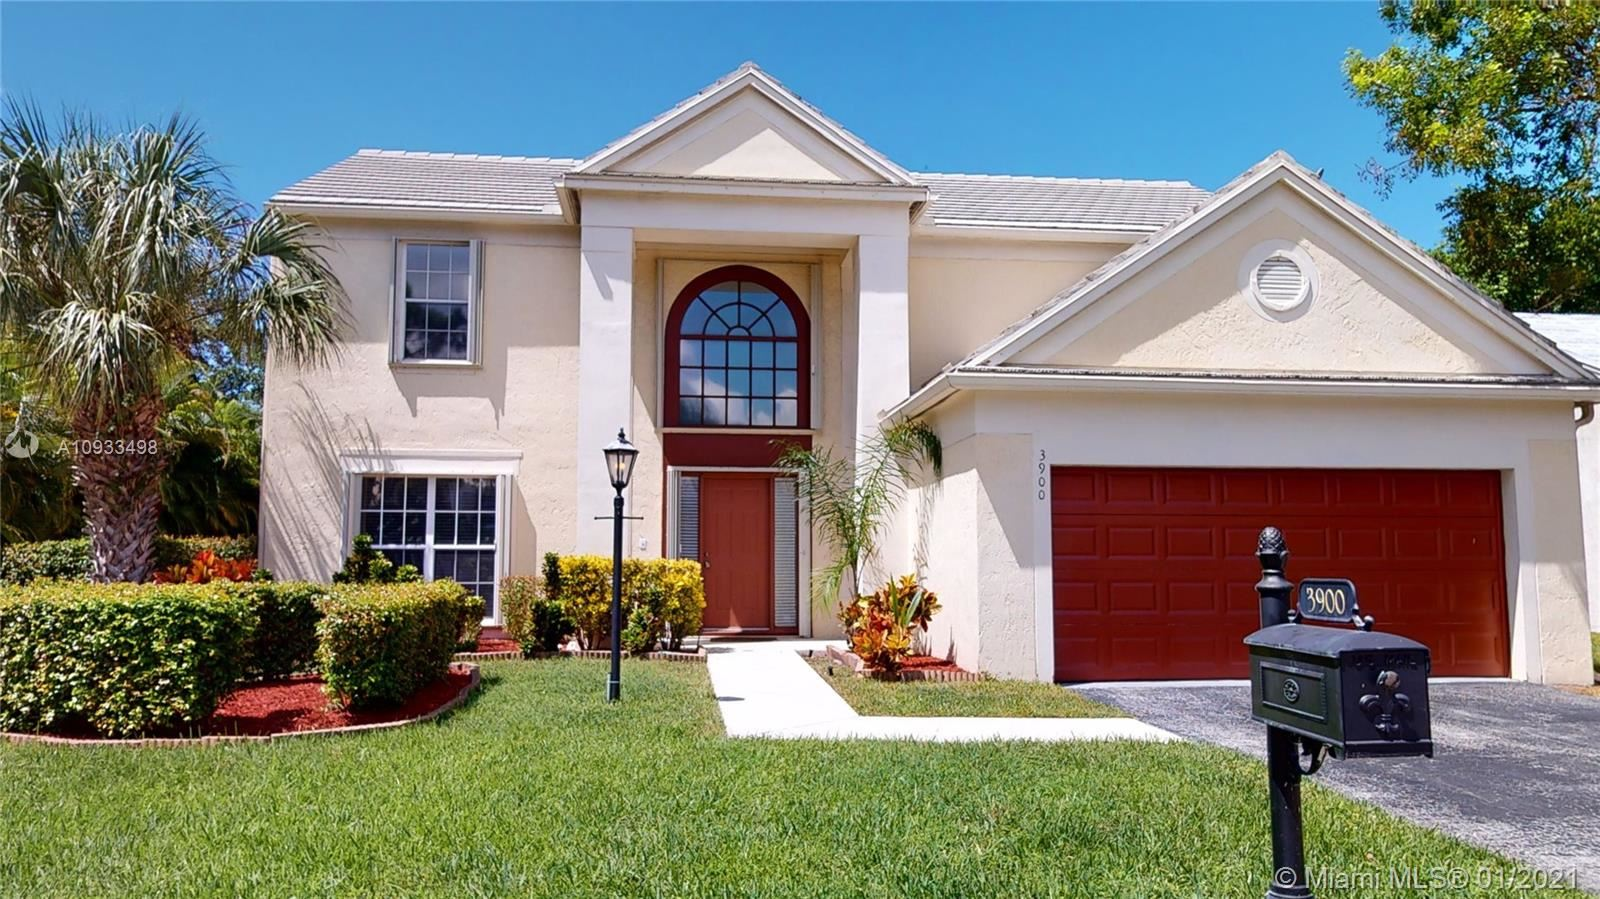 3900 Wild Lime Ln, Coral Springs, FL 33065 - #: A10933498